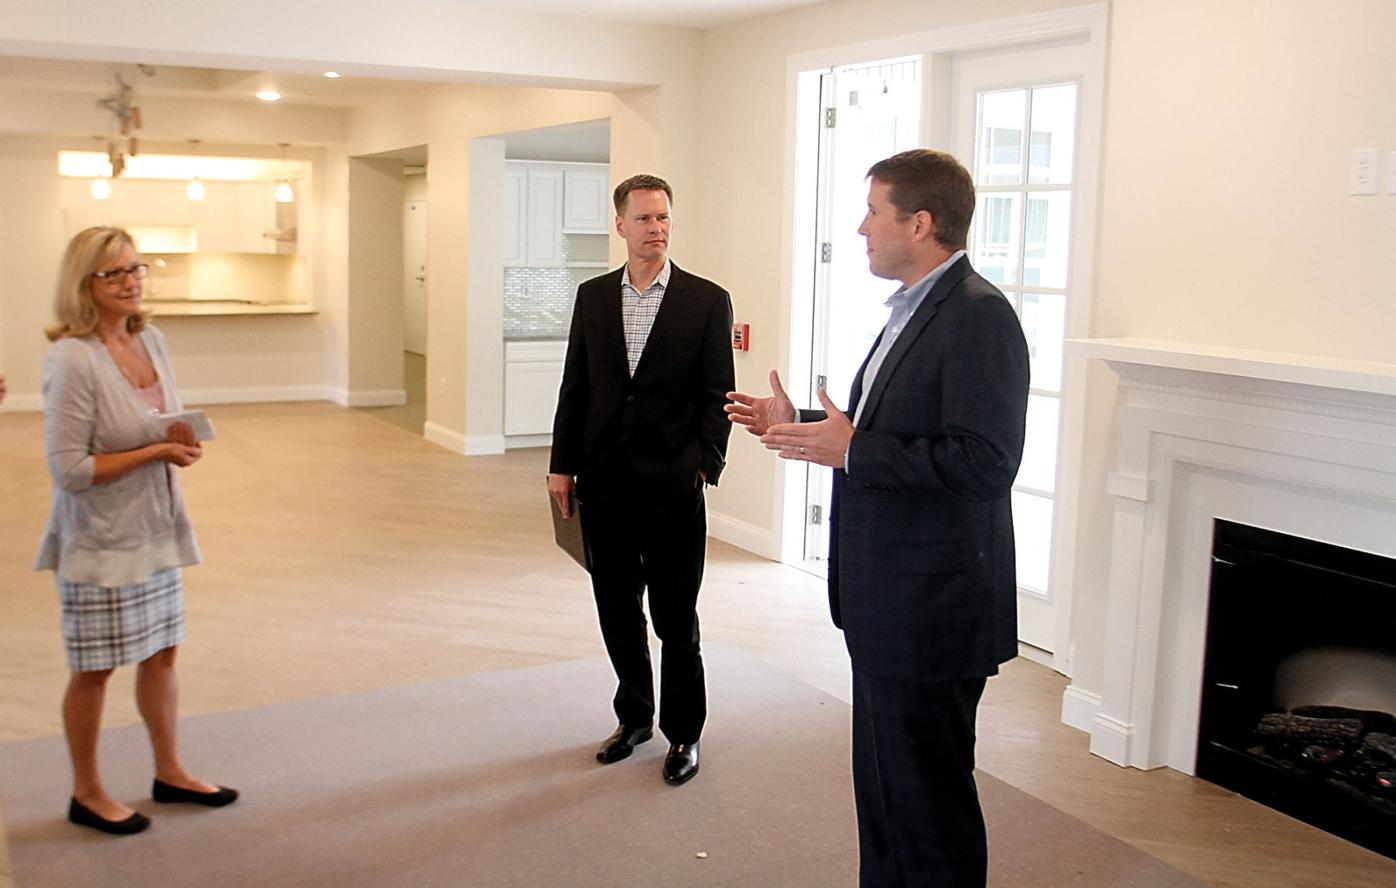 Asbury Place is about to open their new household model homes